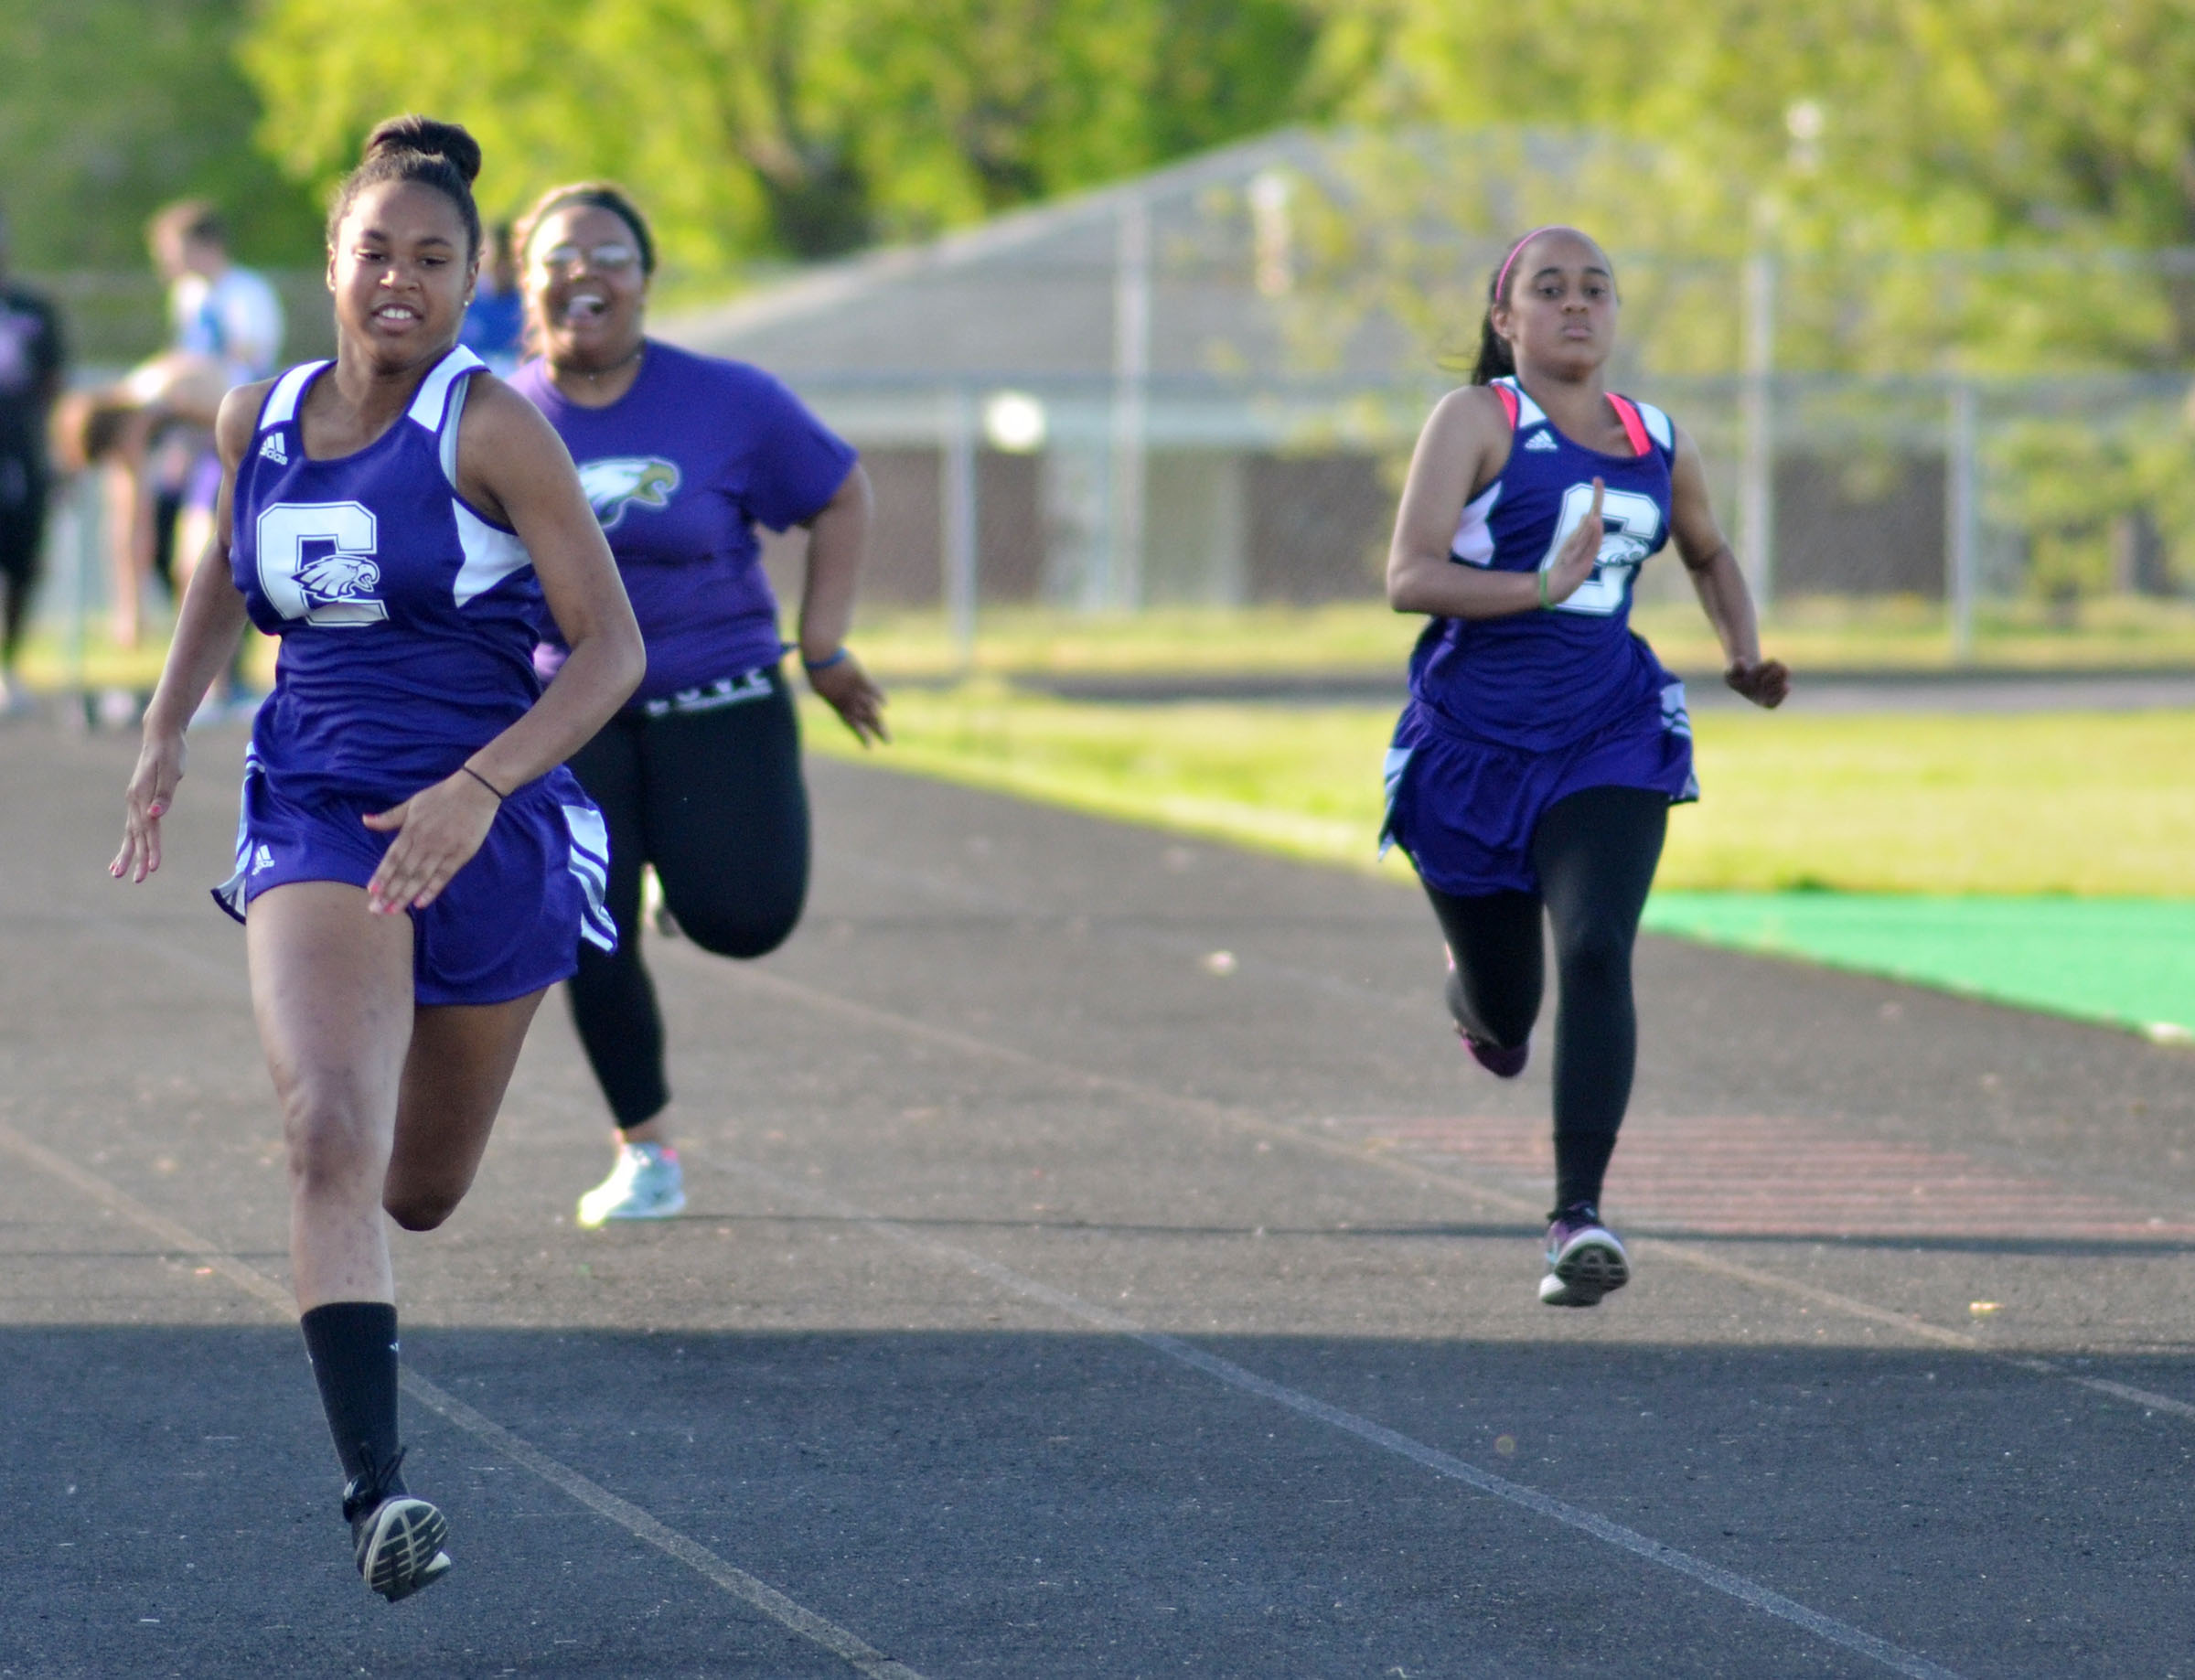 CHS freshman Isis Coleman gets out in front in the 100-meter dash. At right are sophomore Natalie Caldwell and freshman Jasmine Coro.